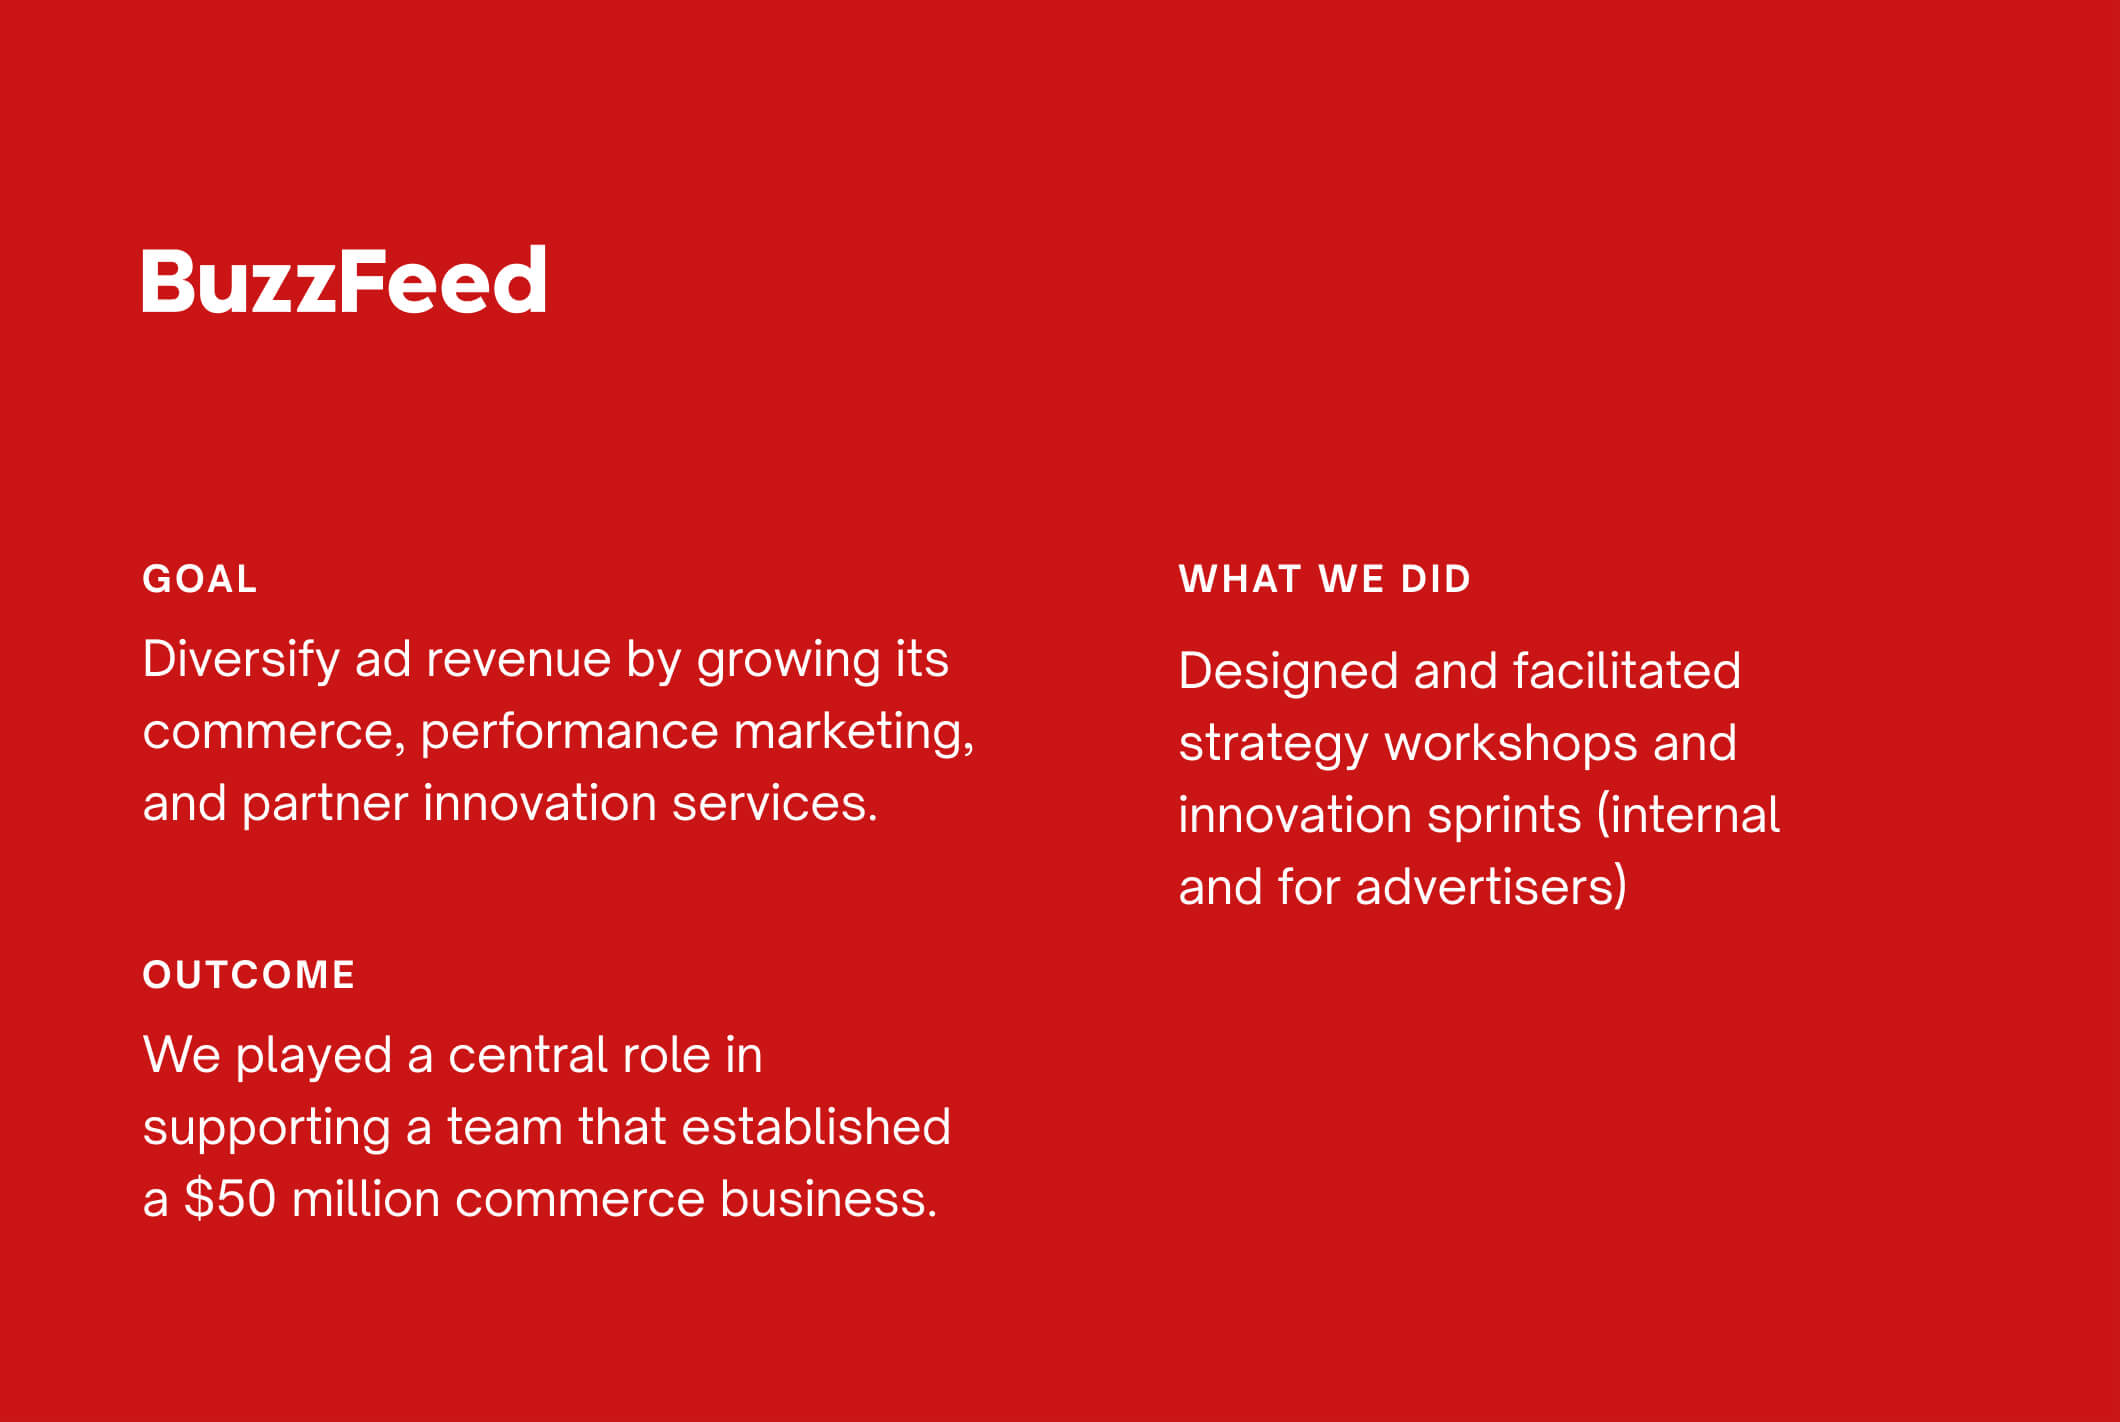 For BuzzFeed, Part and Sum helped diversify revenue by growing their commerce capabilities